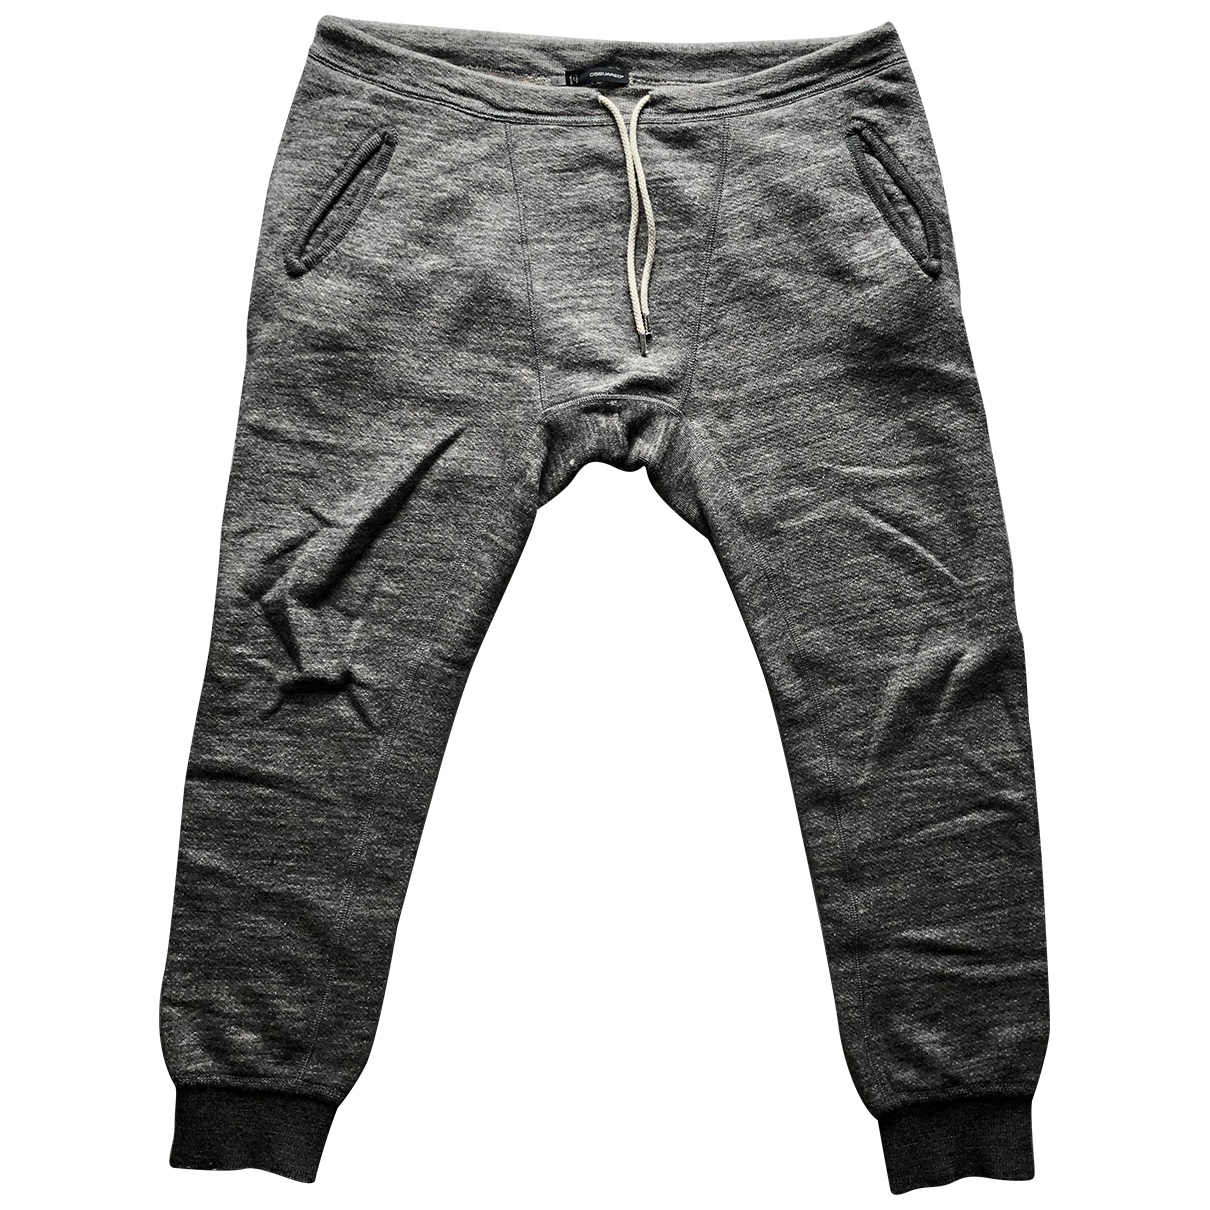 Dsquared2 \N Grey Wool Trousers for Men L International